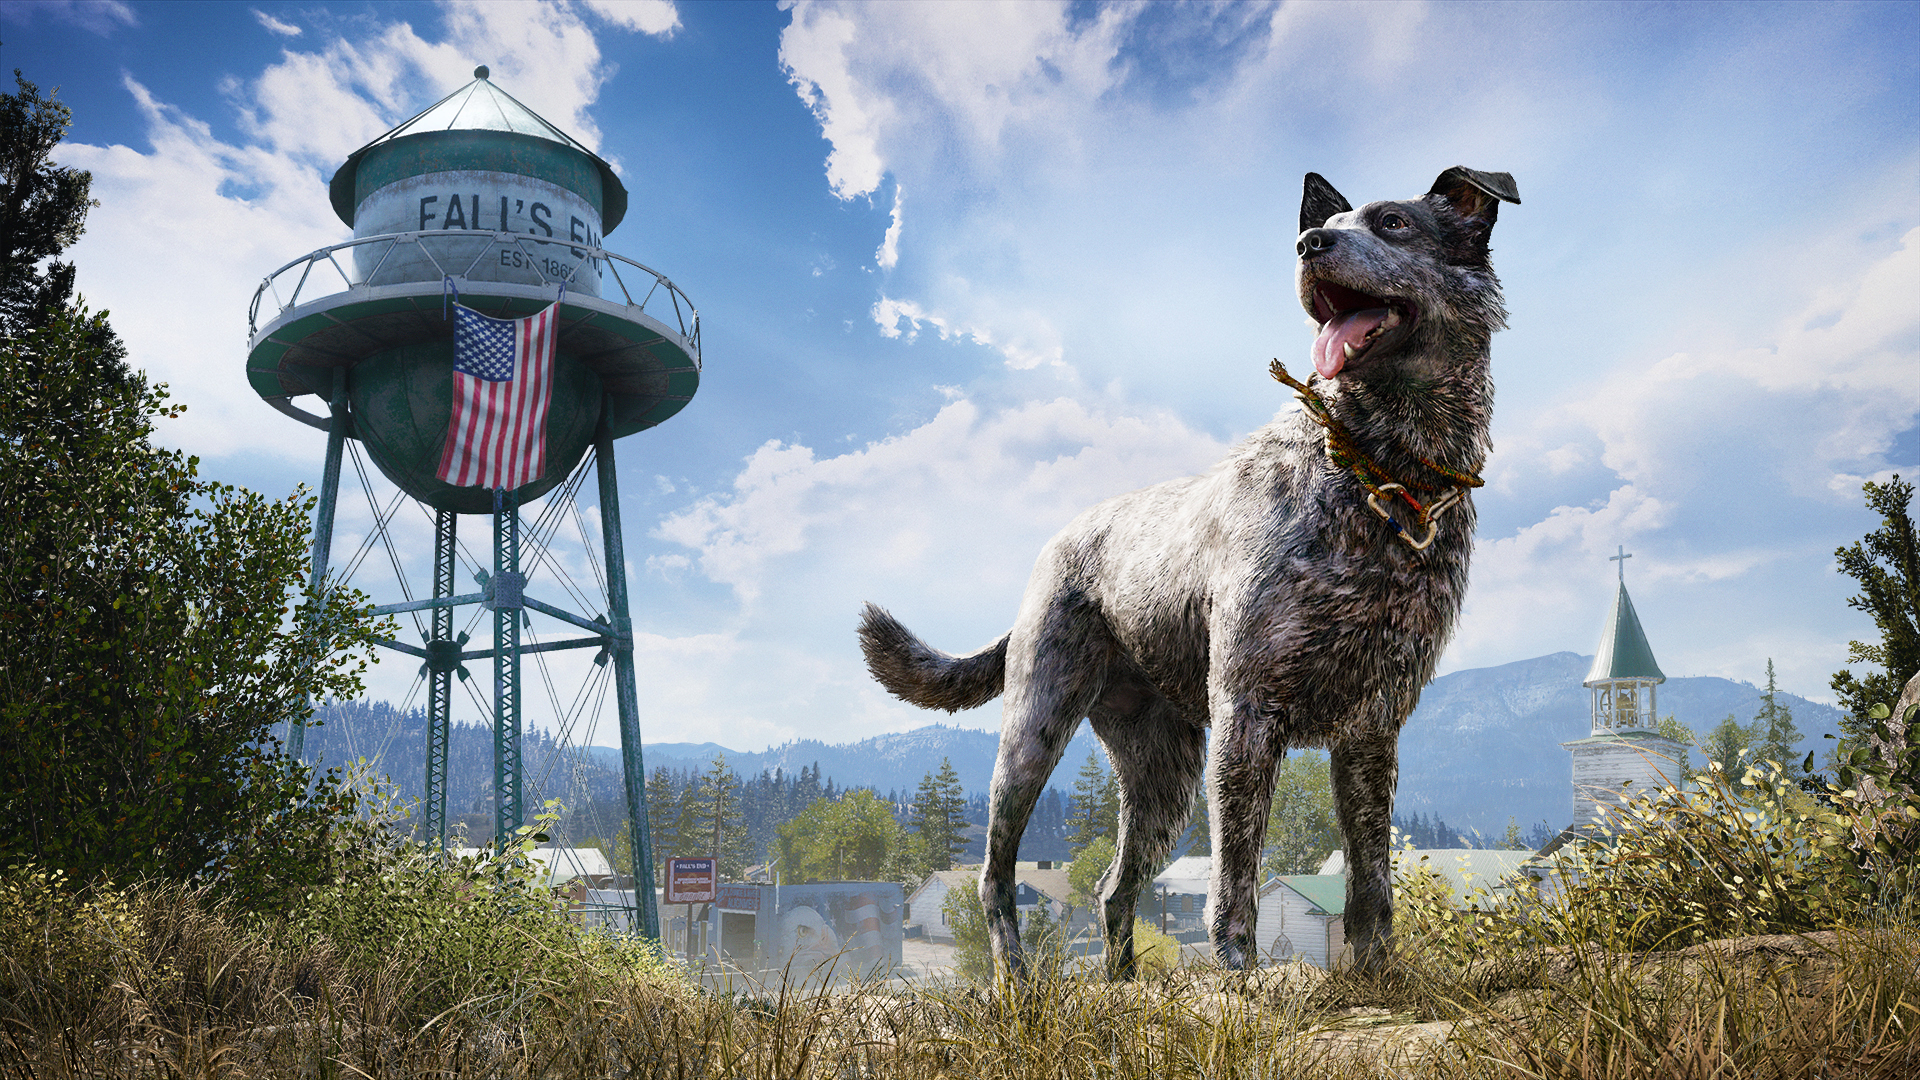 Far Cry 5 Pc Requirements And 4k Recommended Specs Announced Mxdwn Games